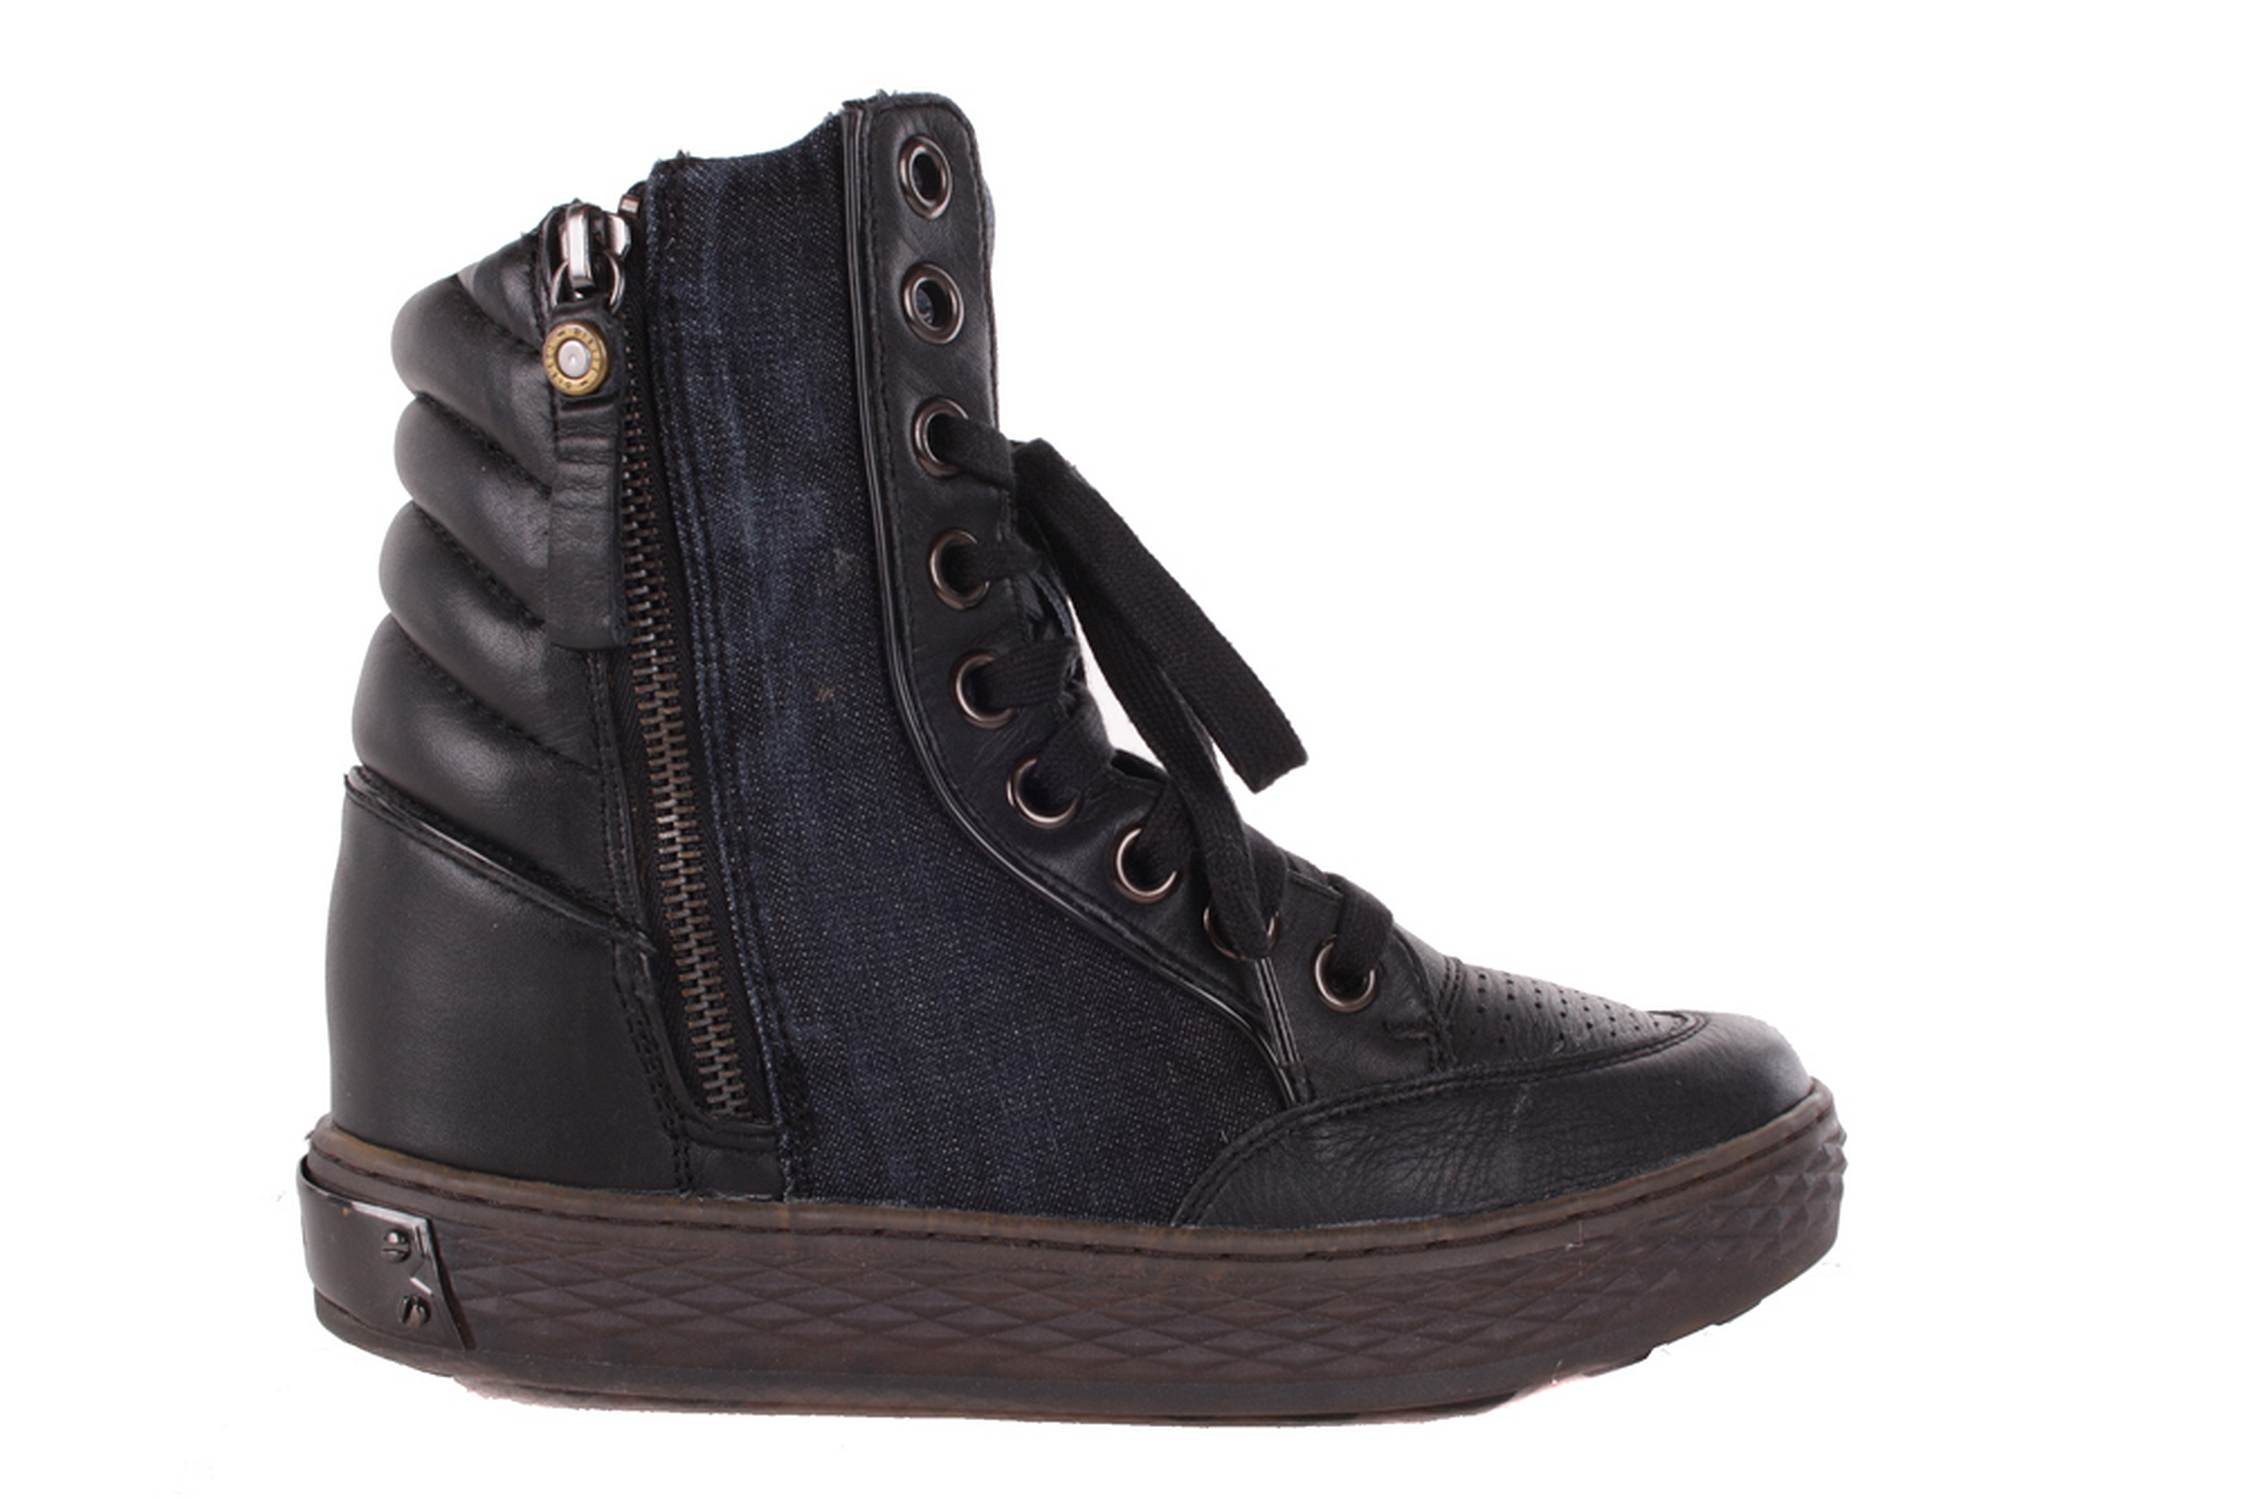 diesel damen sneaker schuhe jeans belair blau schwarz 151 ebay. Black Bedroom Furniture Sets. Home Design Ideas